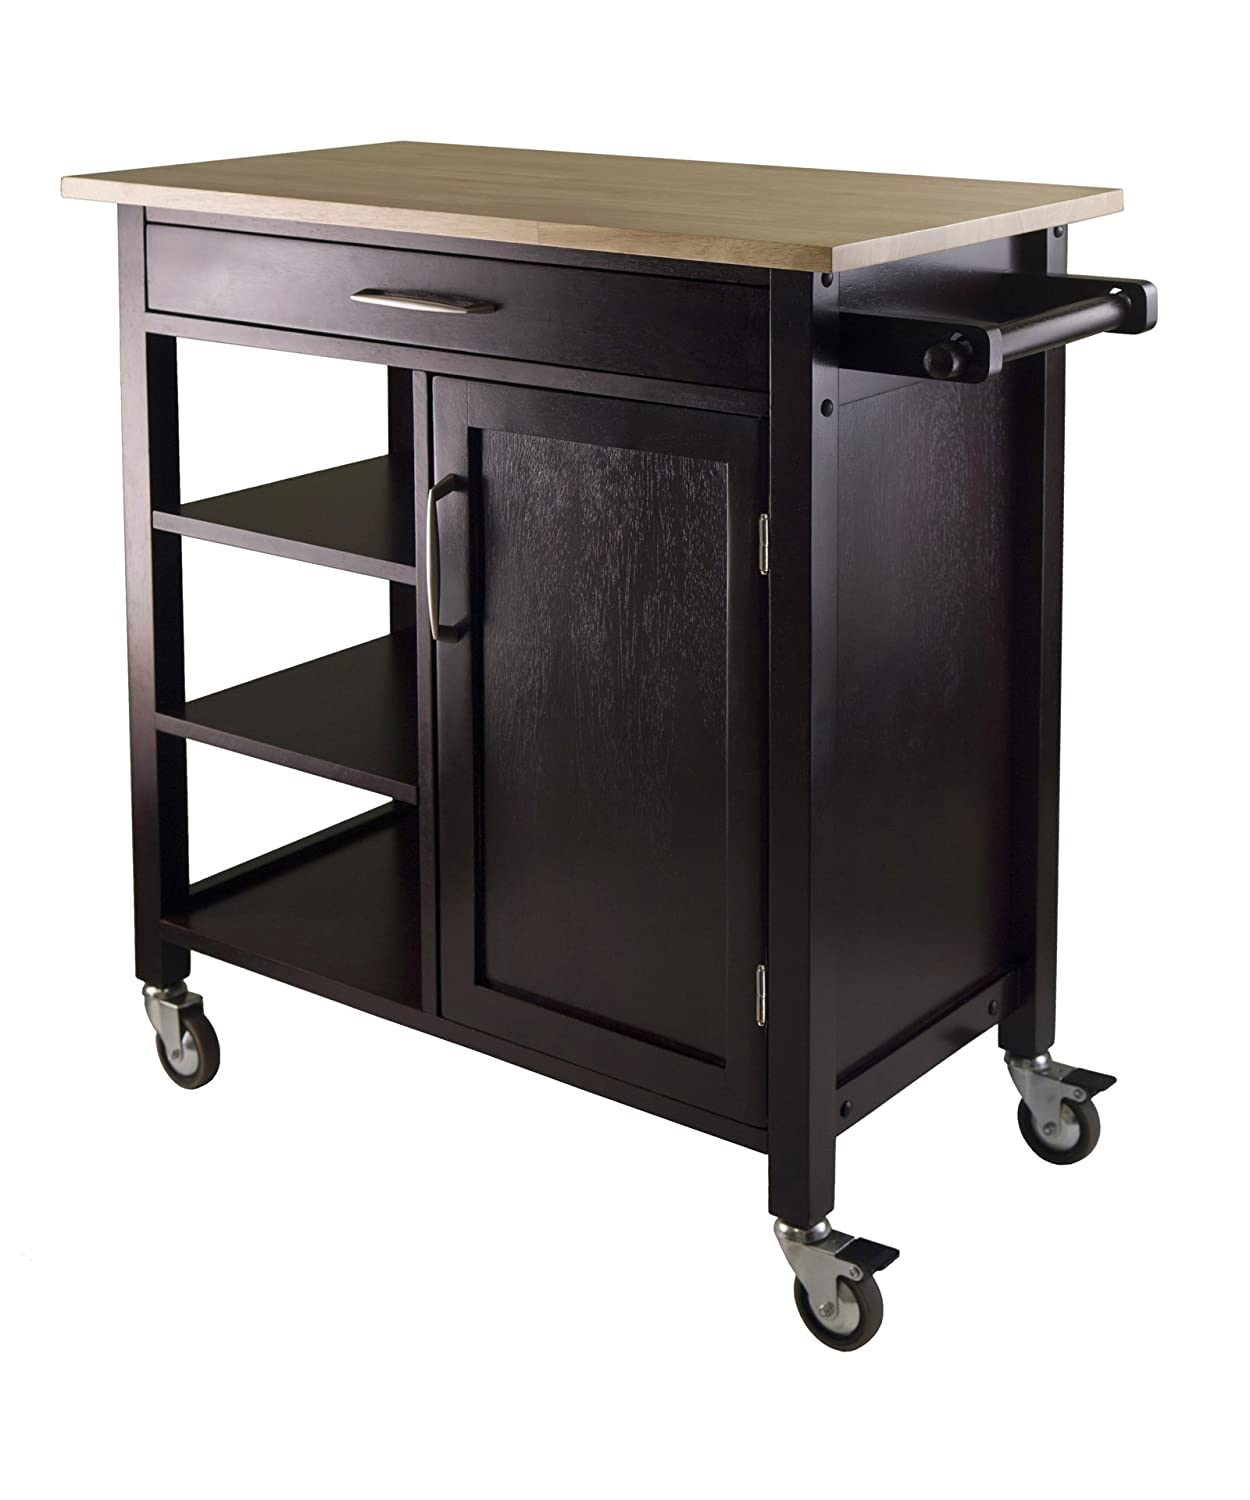 Amazon.com - Winsome Mali Kitchen Cart - Bar & Serving Carts